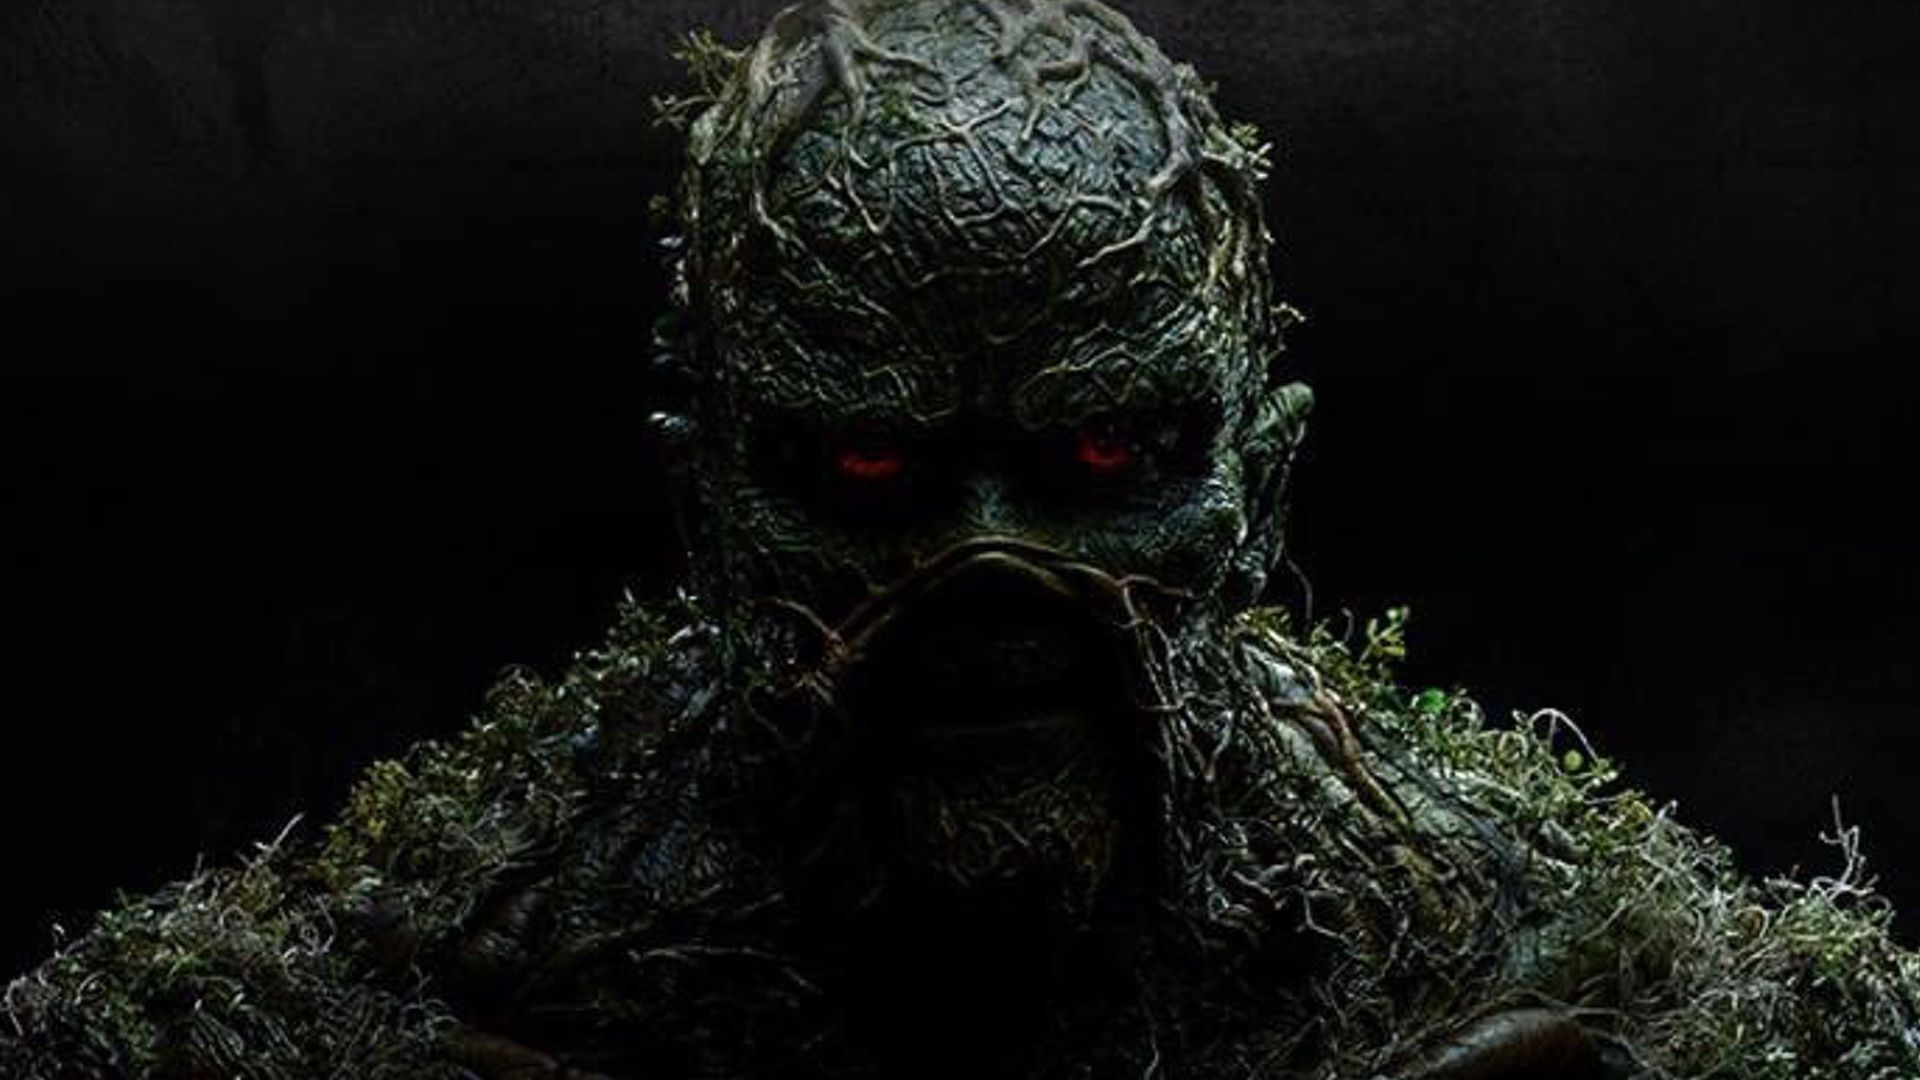 Swamp Thing Wallpaper Posted By Zoey Sellers